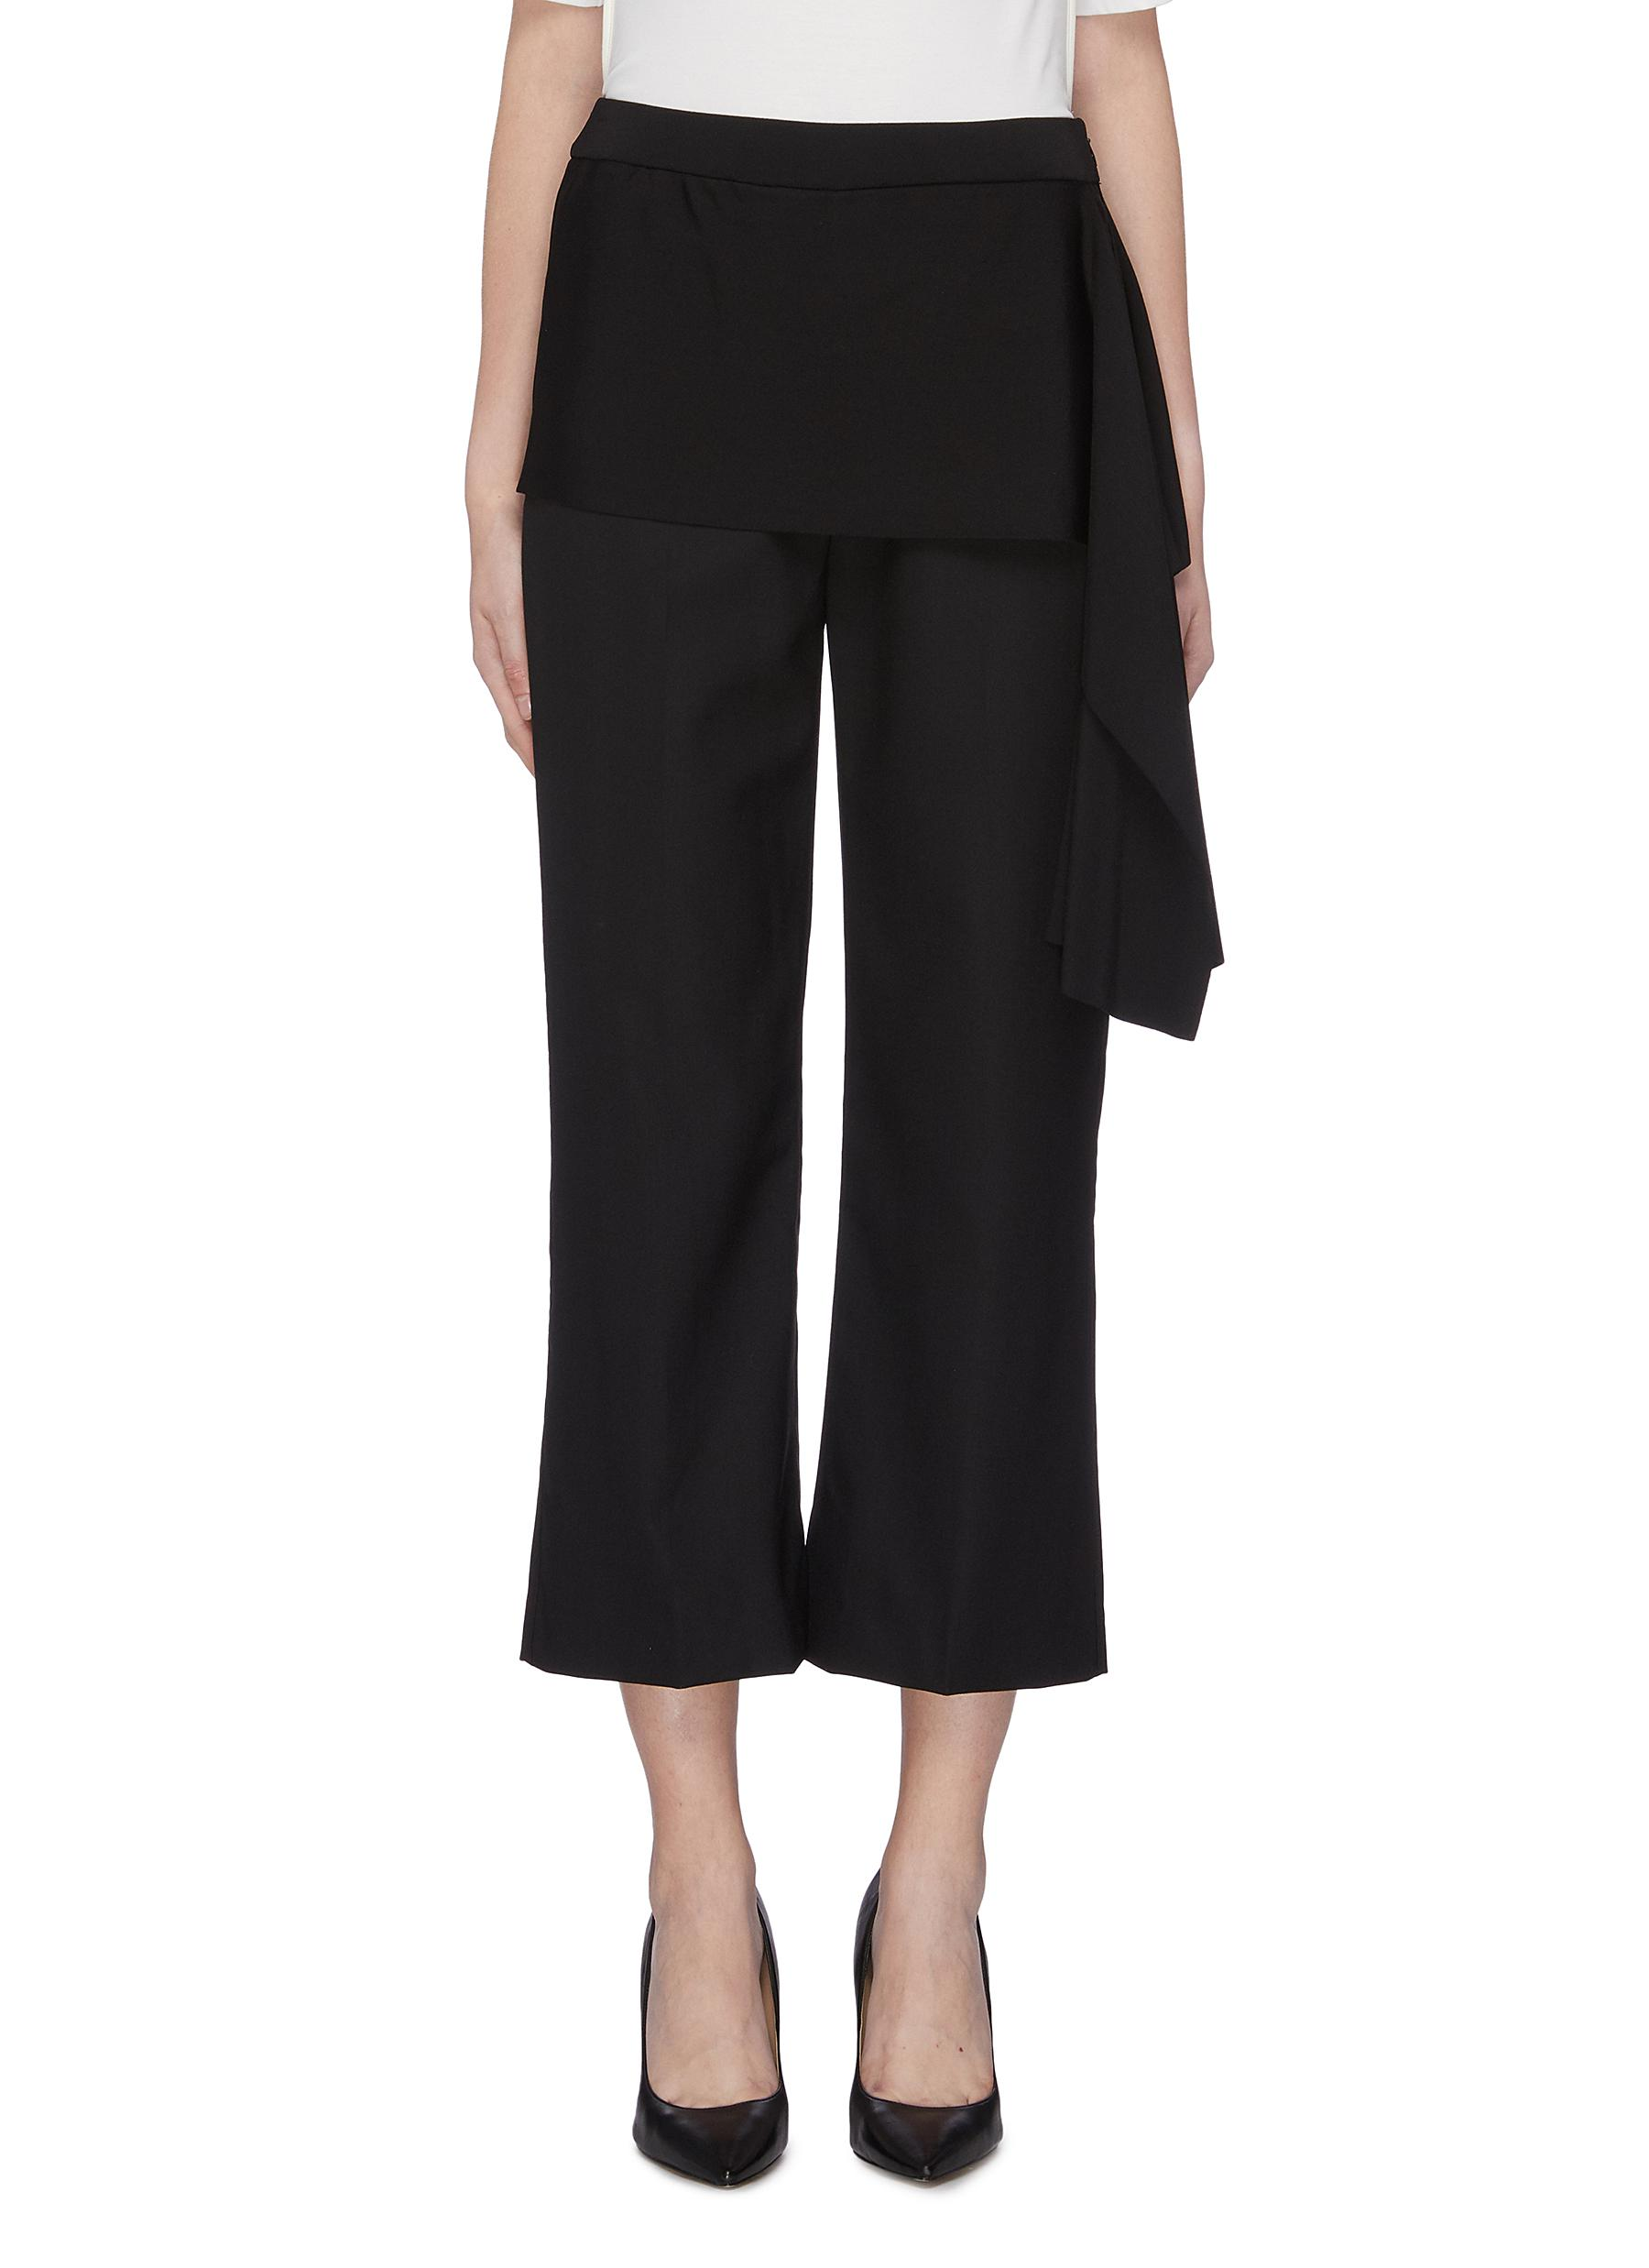 Drape knit panel cropped suiting pants by 3.1 Phillip Lim